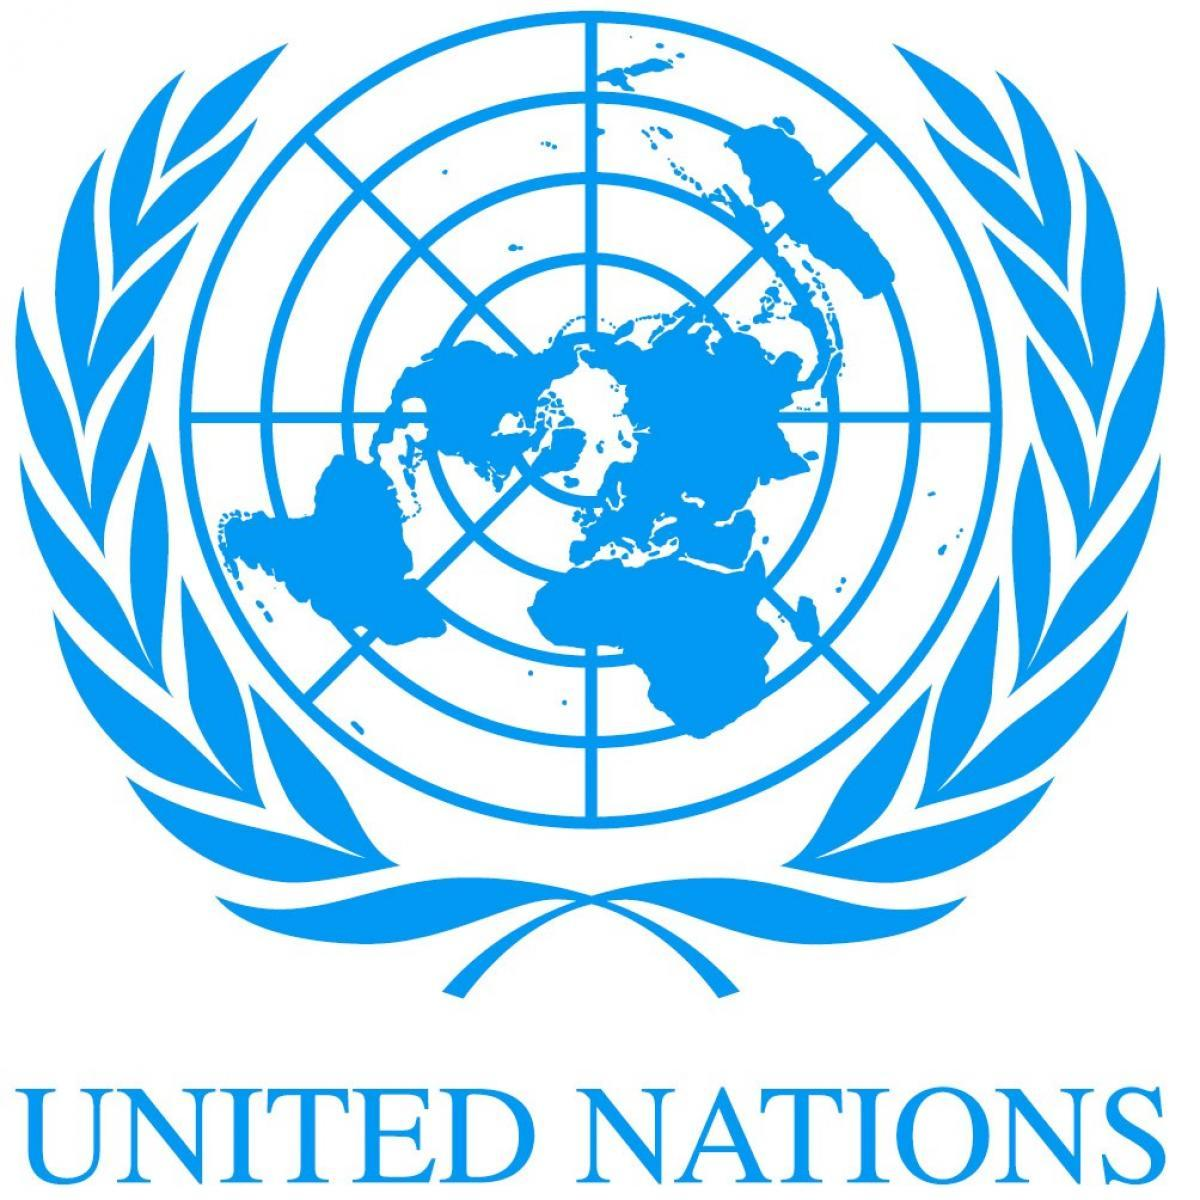 (United Nations homepage)